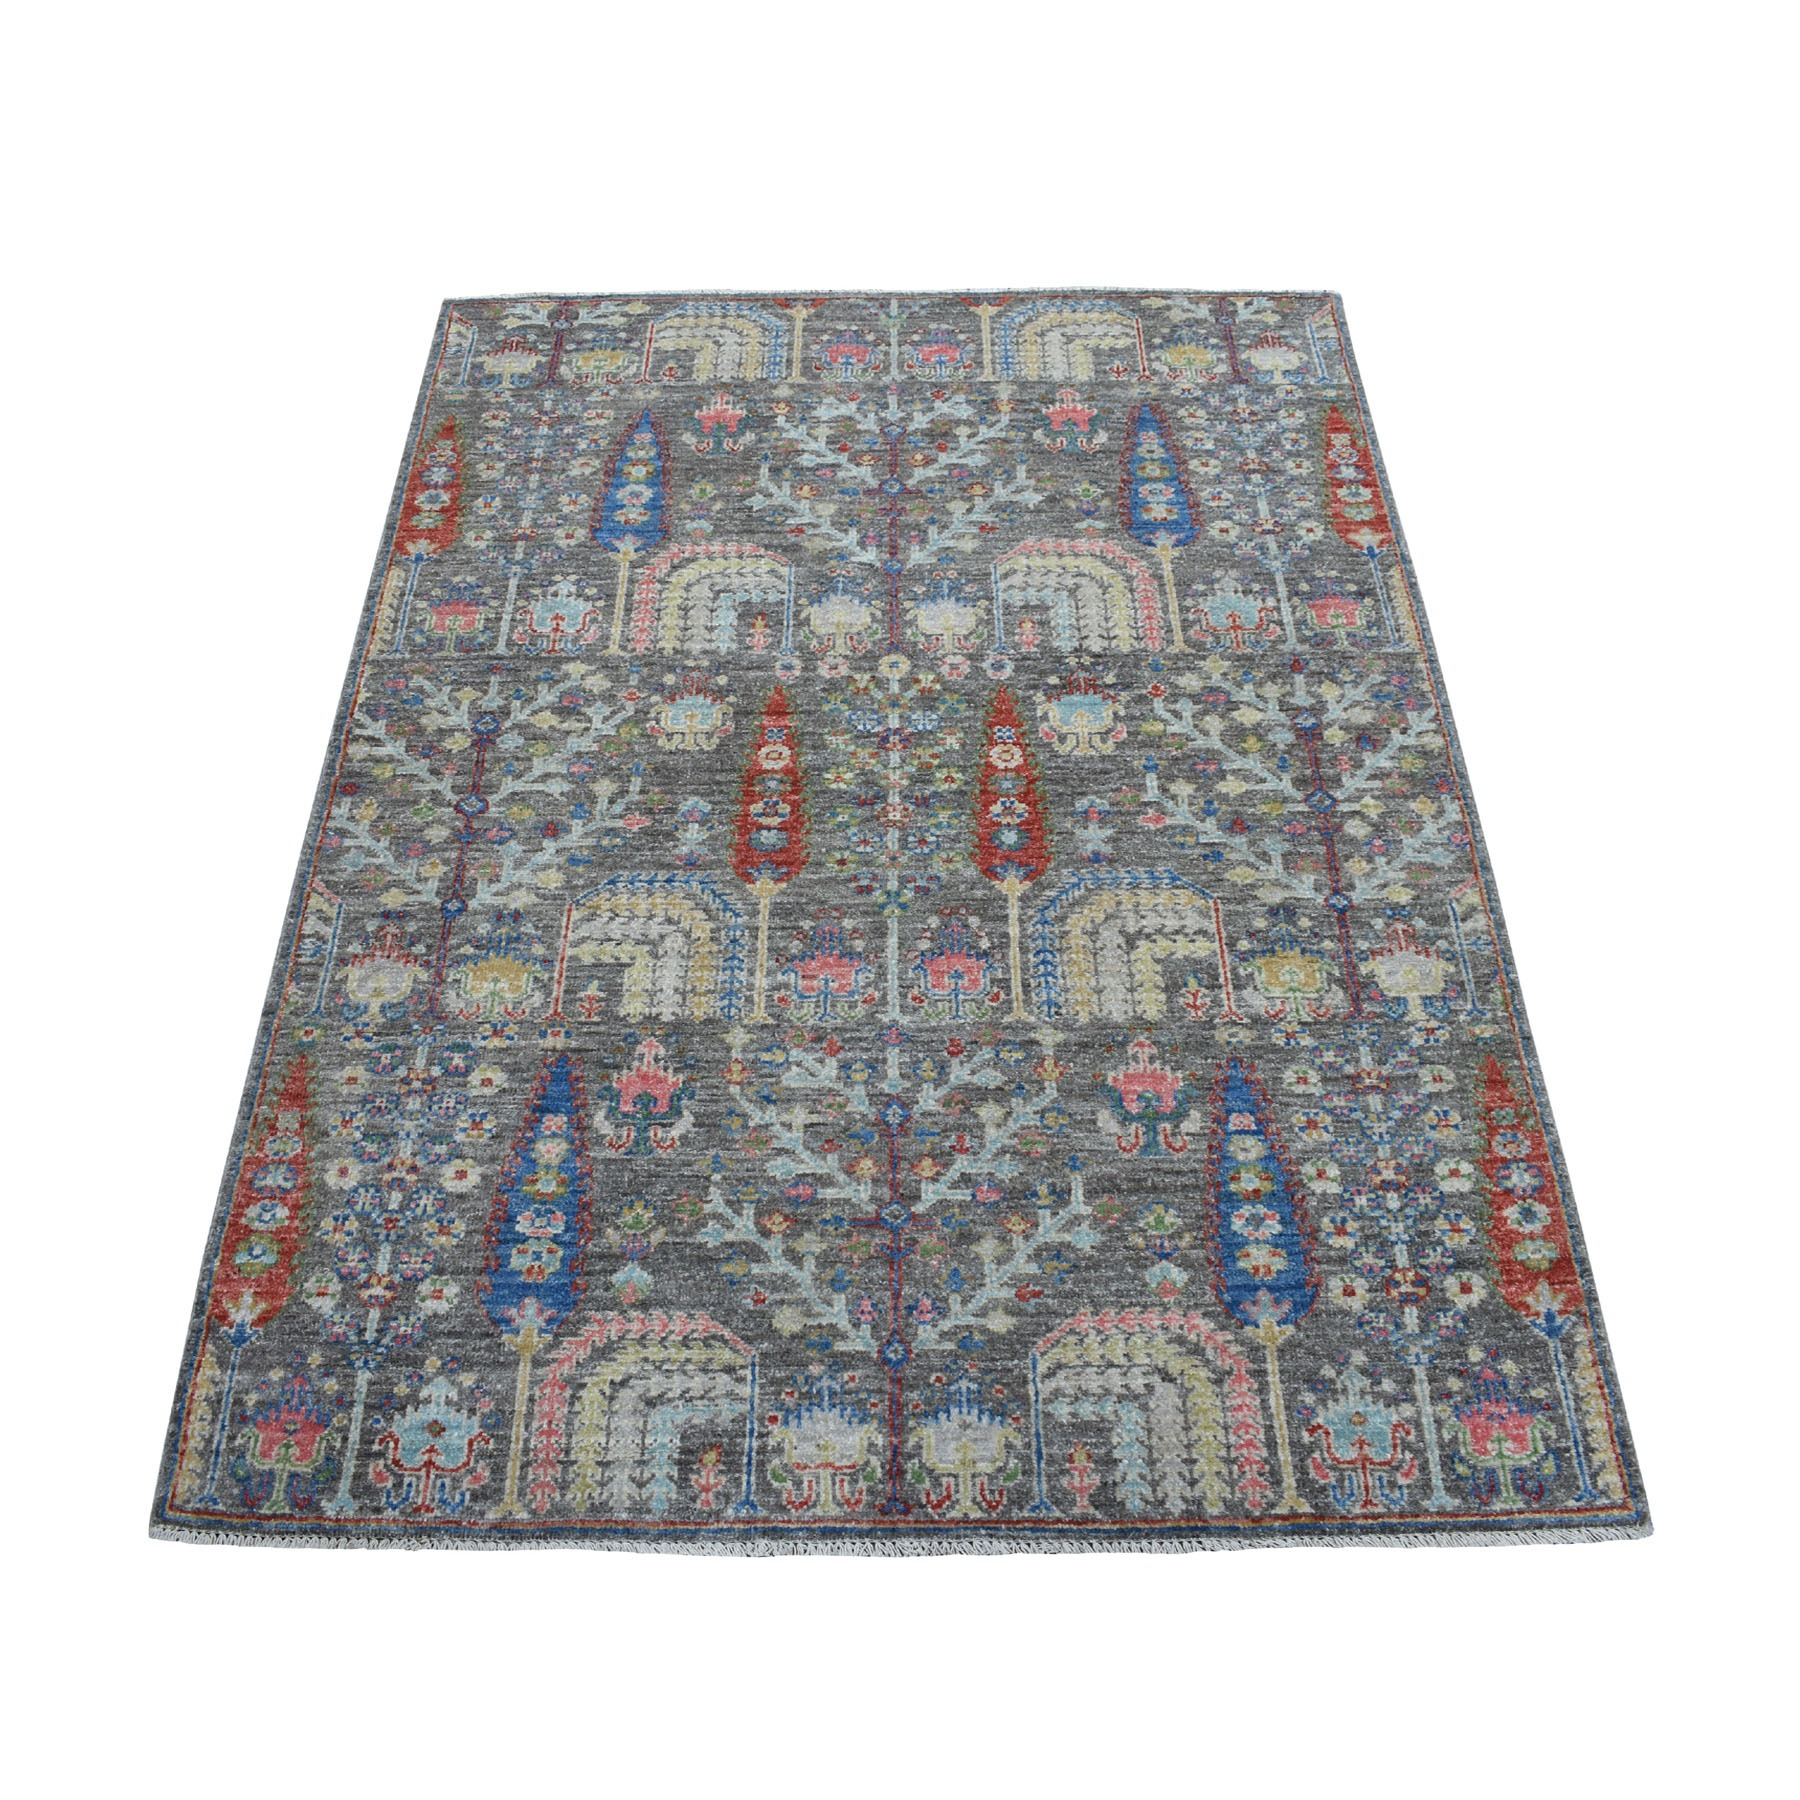 "4'x5'8"" Gray With Pop Of Color Willow And Cypress Tree Design Hand Woven Oriental Rug"